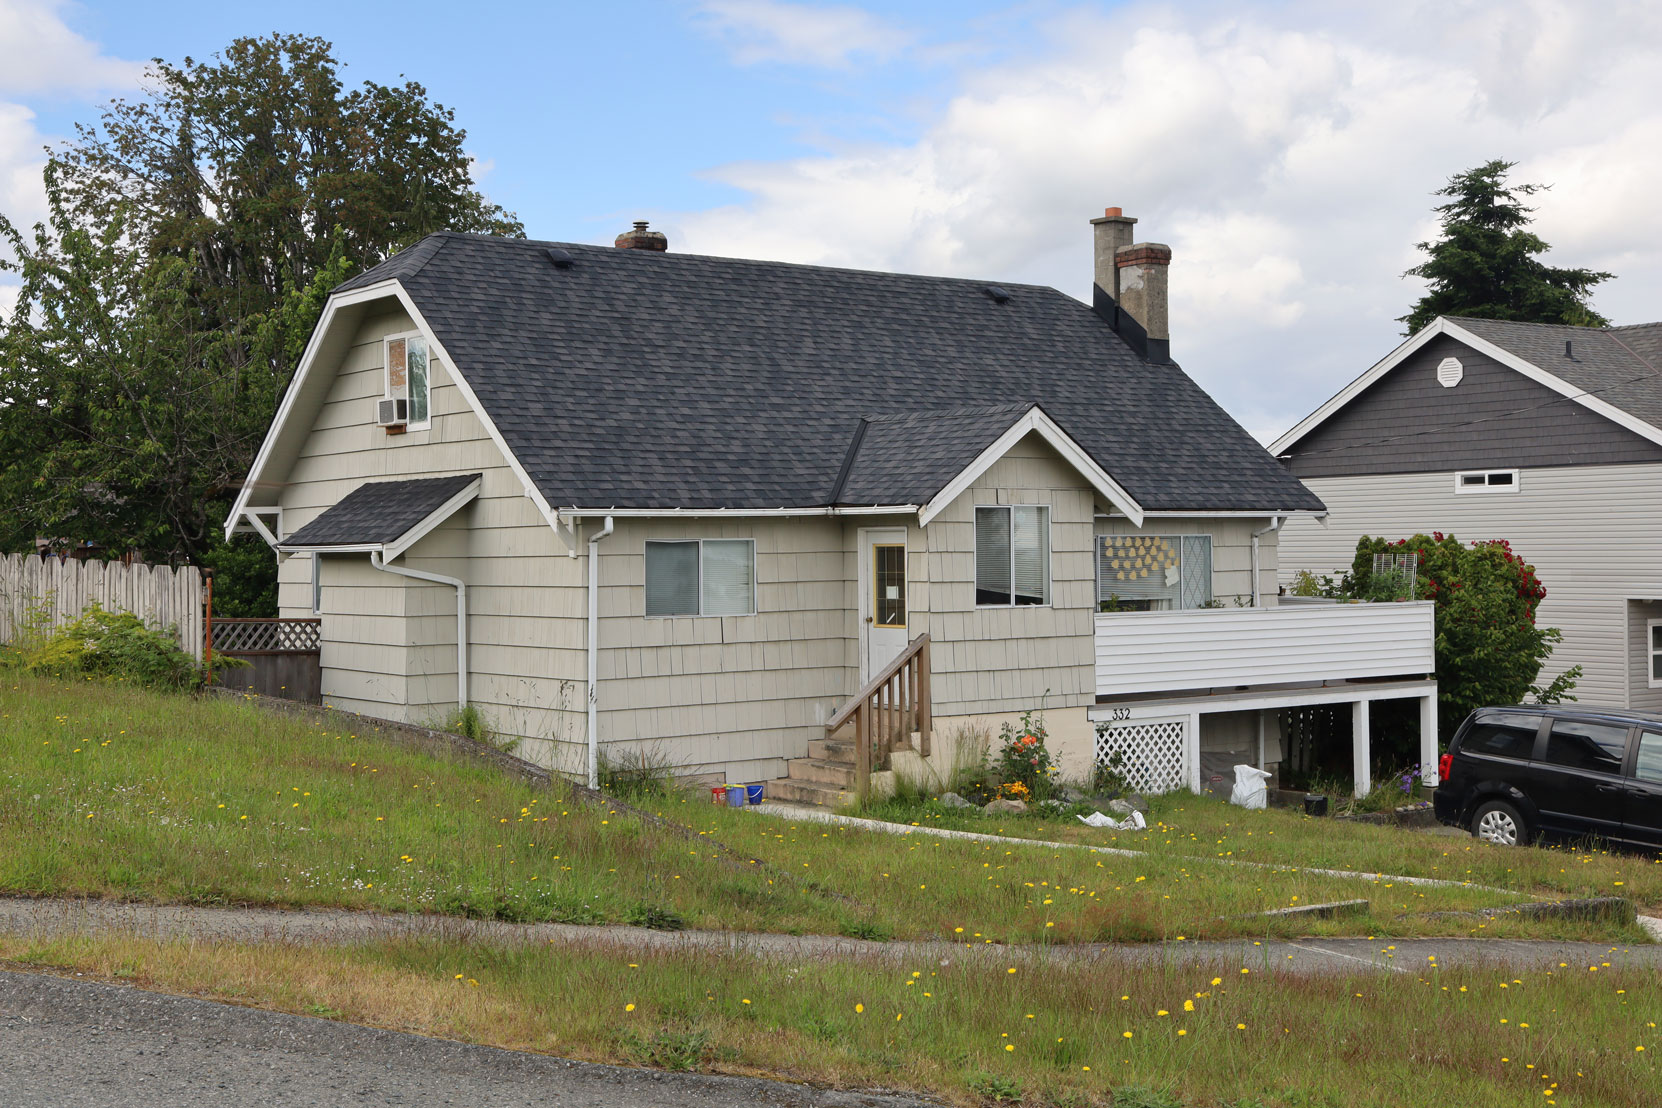 332 Methuen Street, Ladysmith, BC, built in 1940 (photo: Mark Anderson)